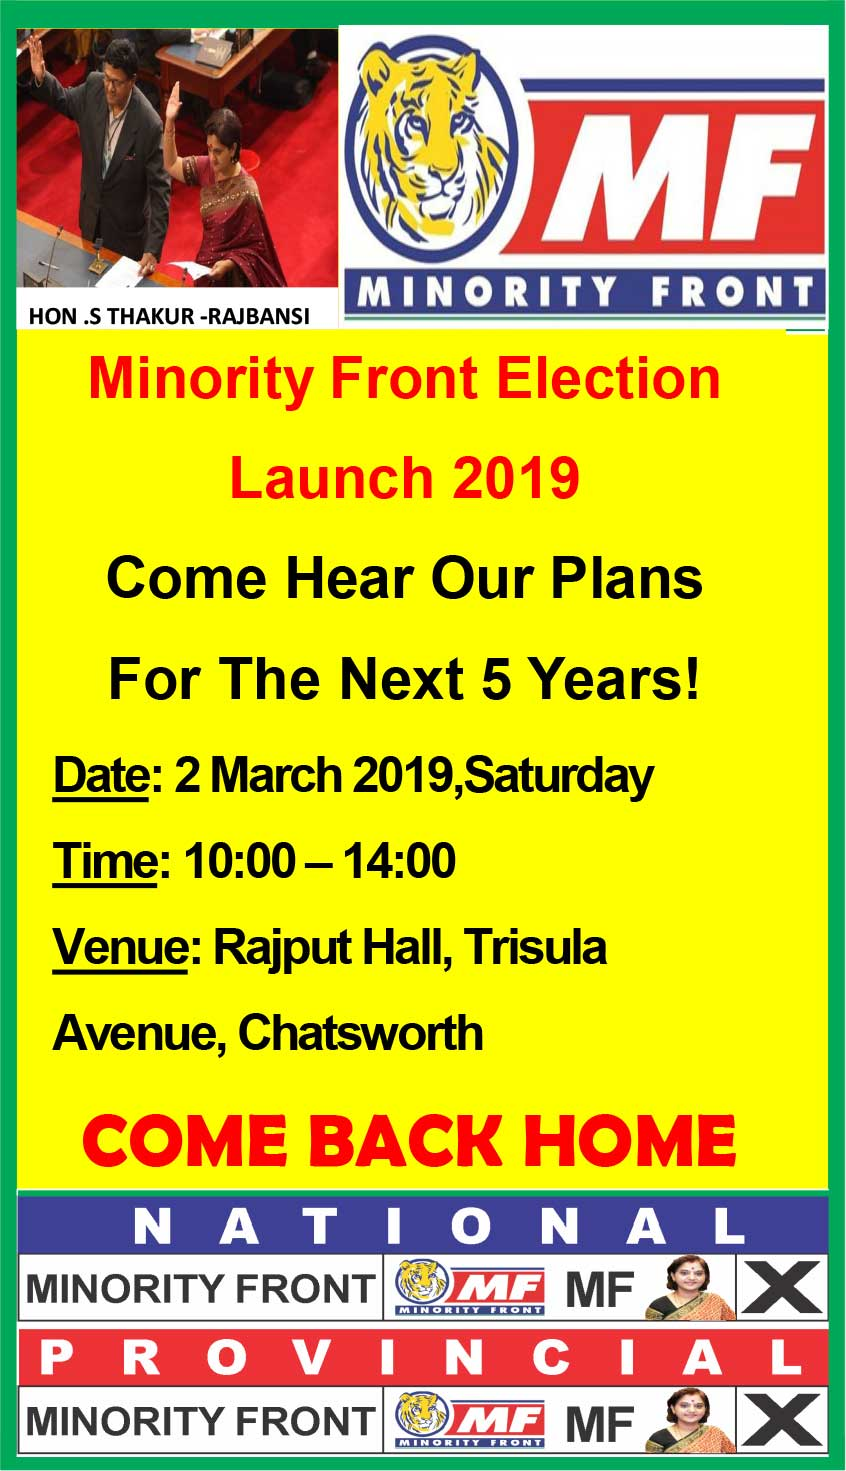 Final Advert for Election Launch 20/02/2019